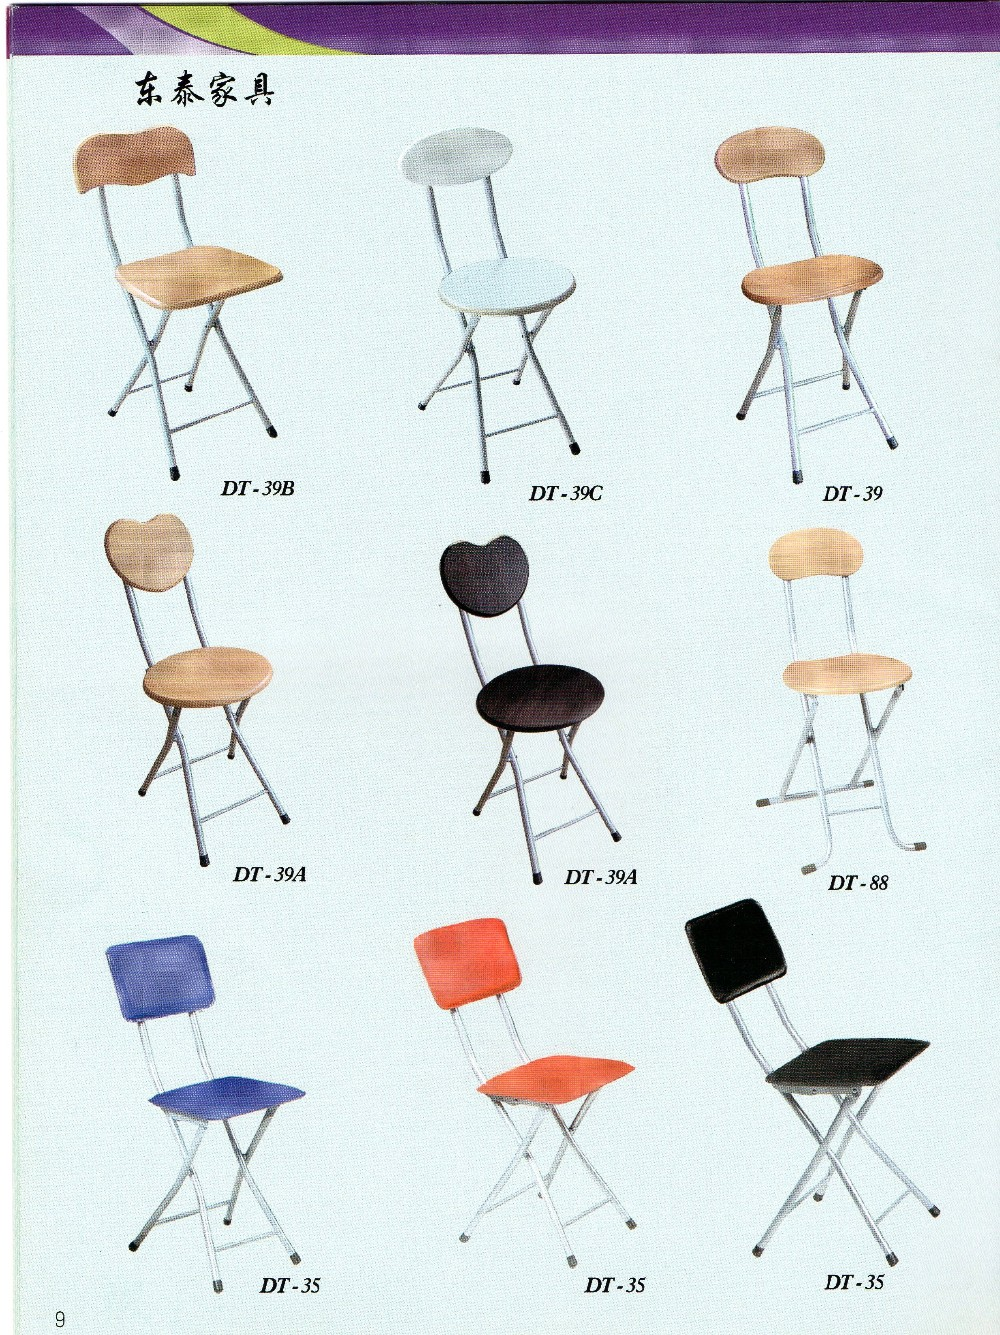 Cheap and Good Quality Metal Structure Folding Chair DT-96